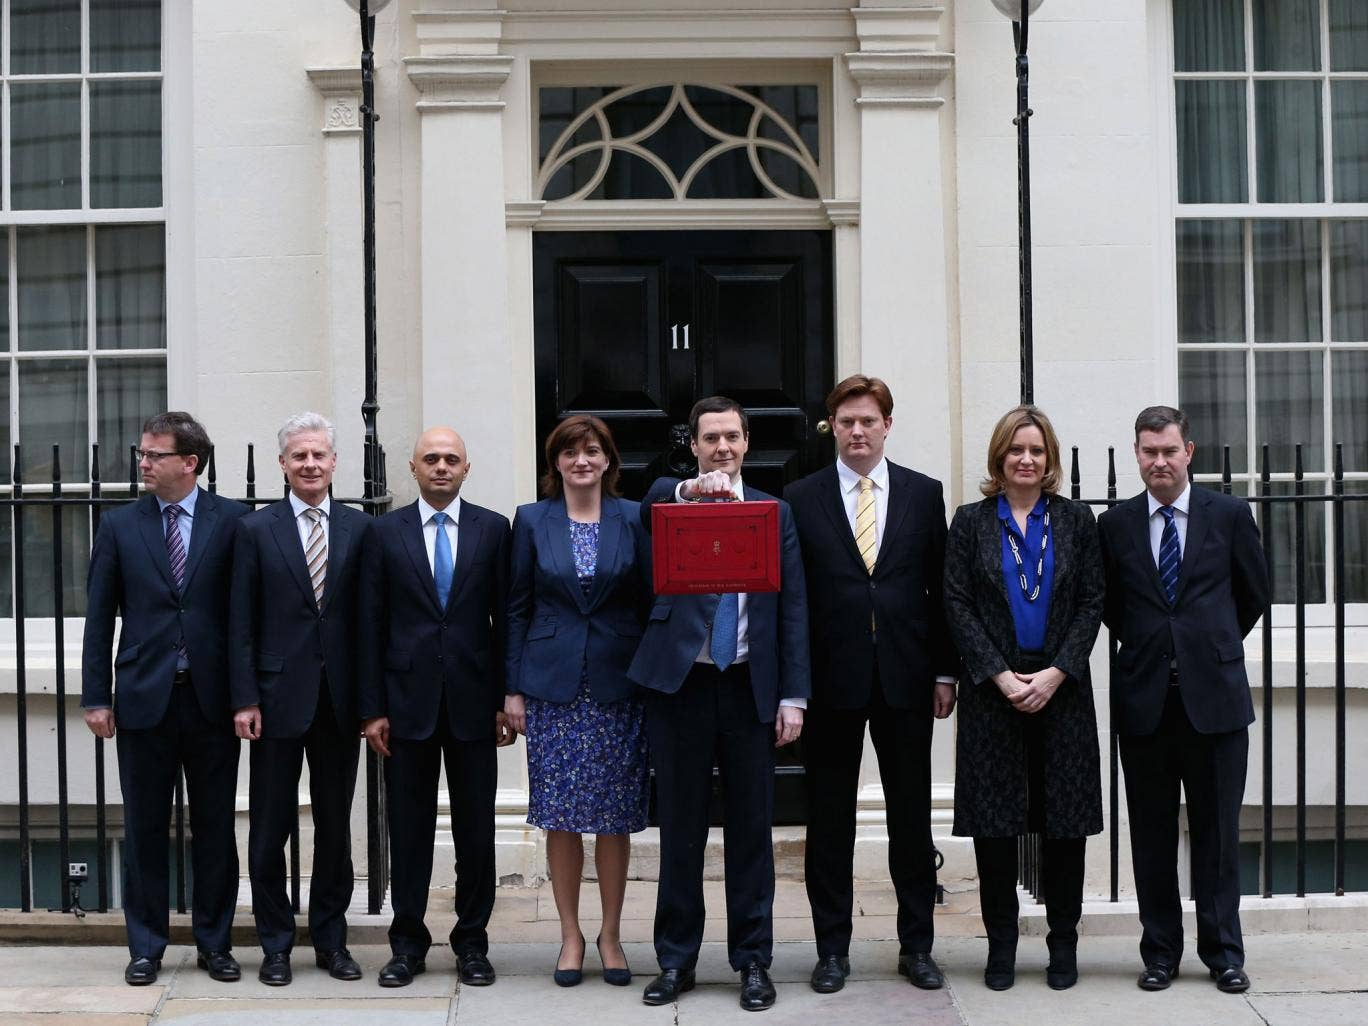 The Chancellor of the Exchequer George Osborne holding the budget box stands with his Treasury team (2nd L-R) Commercial Secretary to the Treasury Lord Deighton, Financial Secretary to the Treasury Sajid Javid, Economic Secretary to the Treasury Nicky Mor